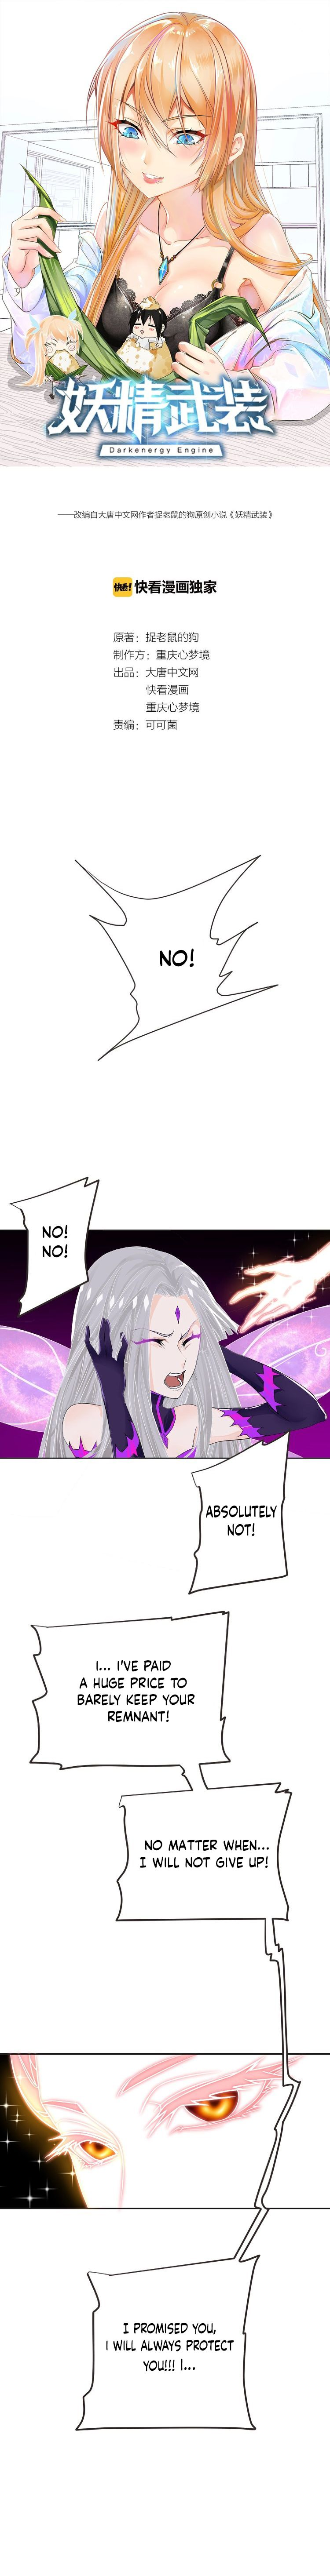 Fairy's Armament - chapter 13 - #2